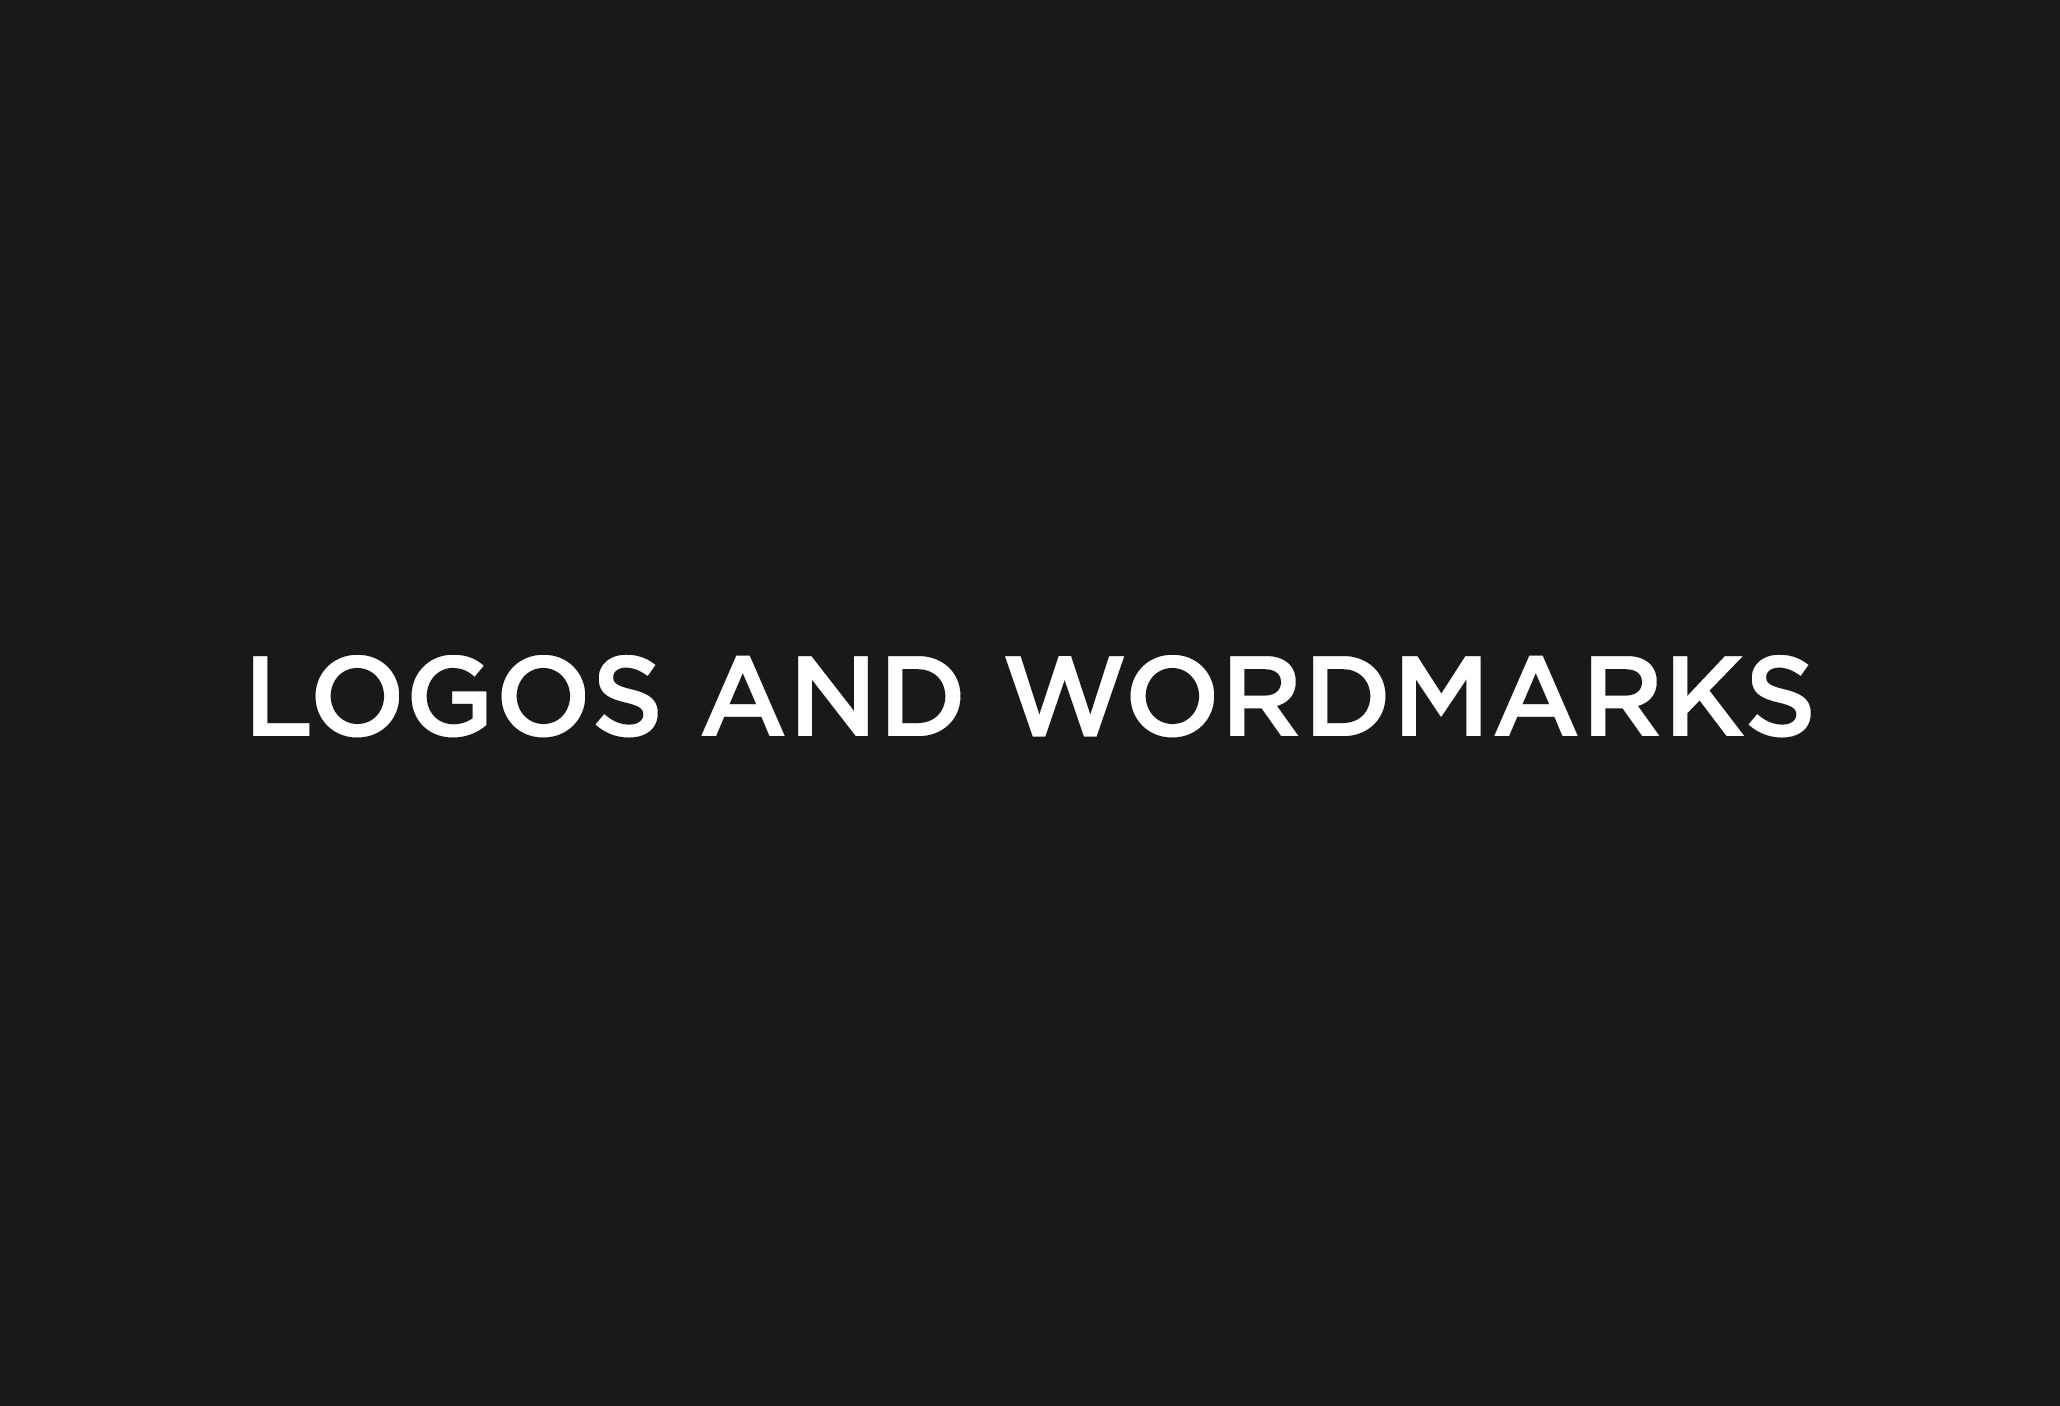 Various logos and wordmarks